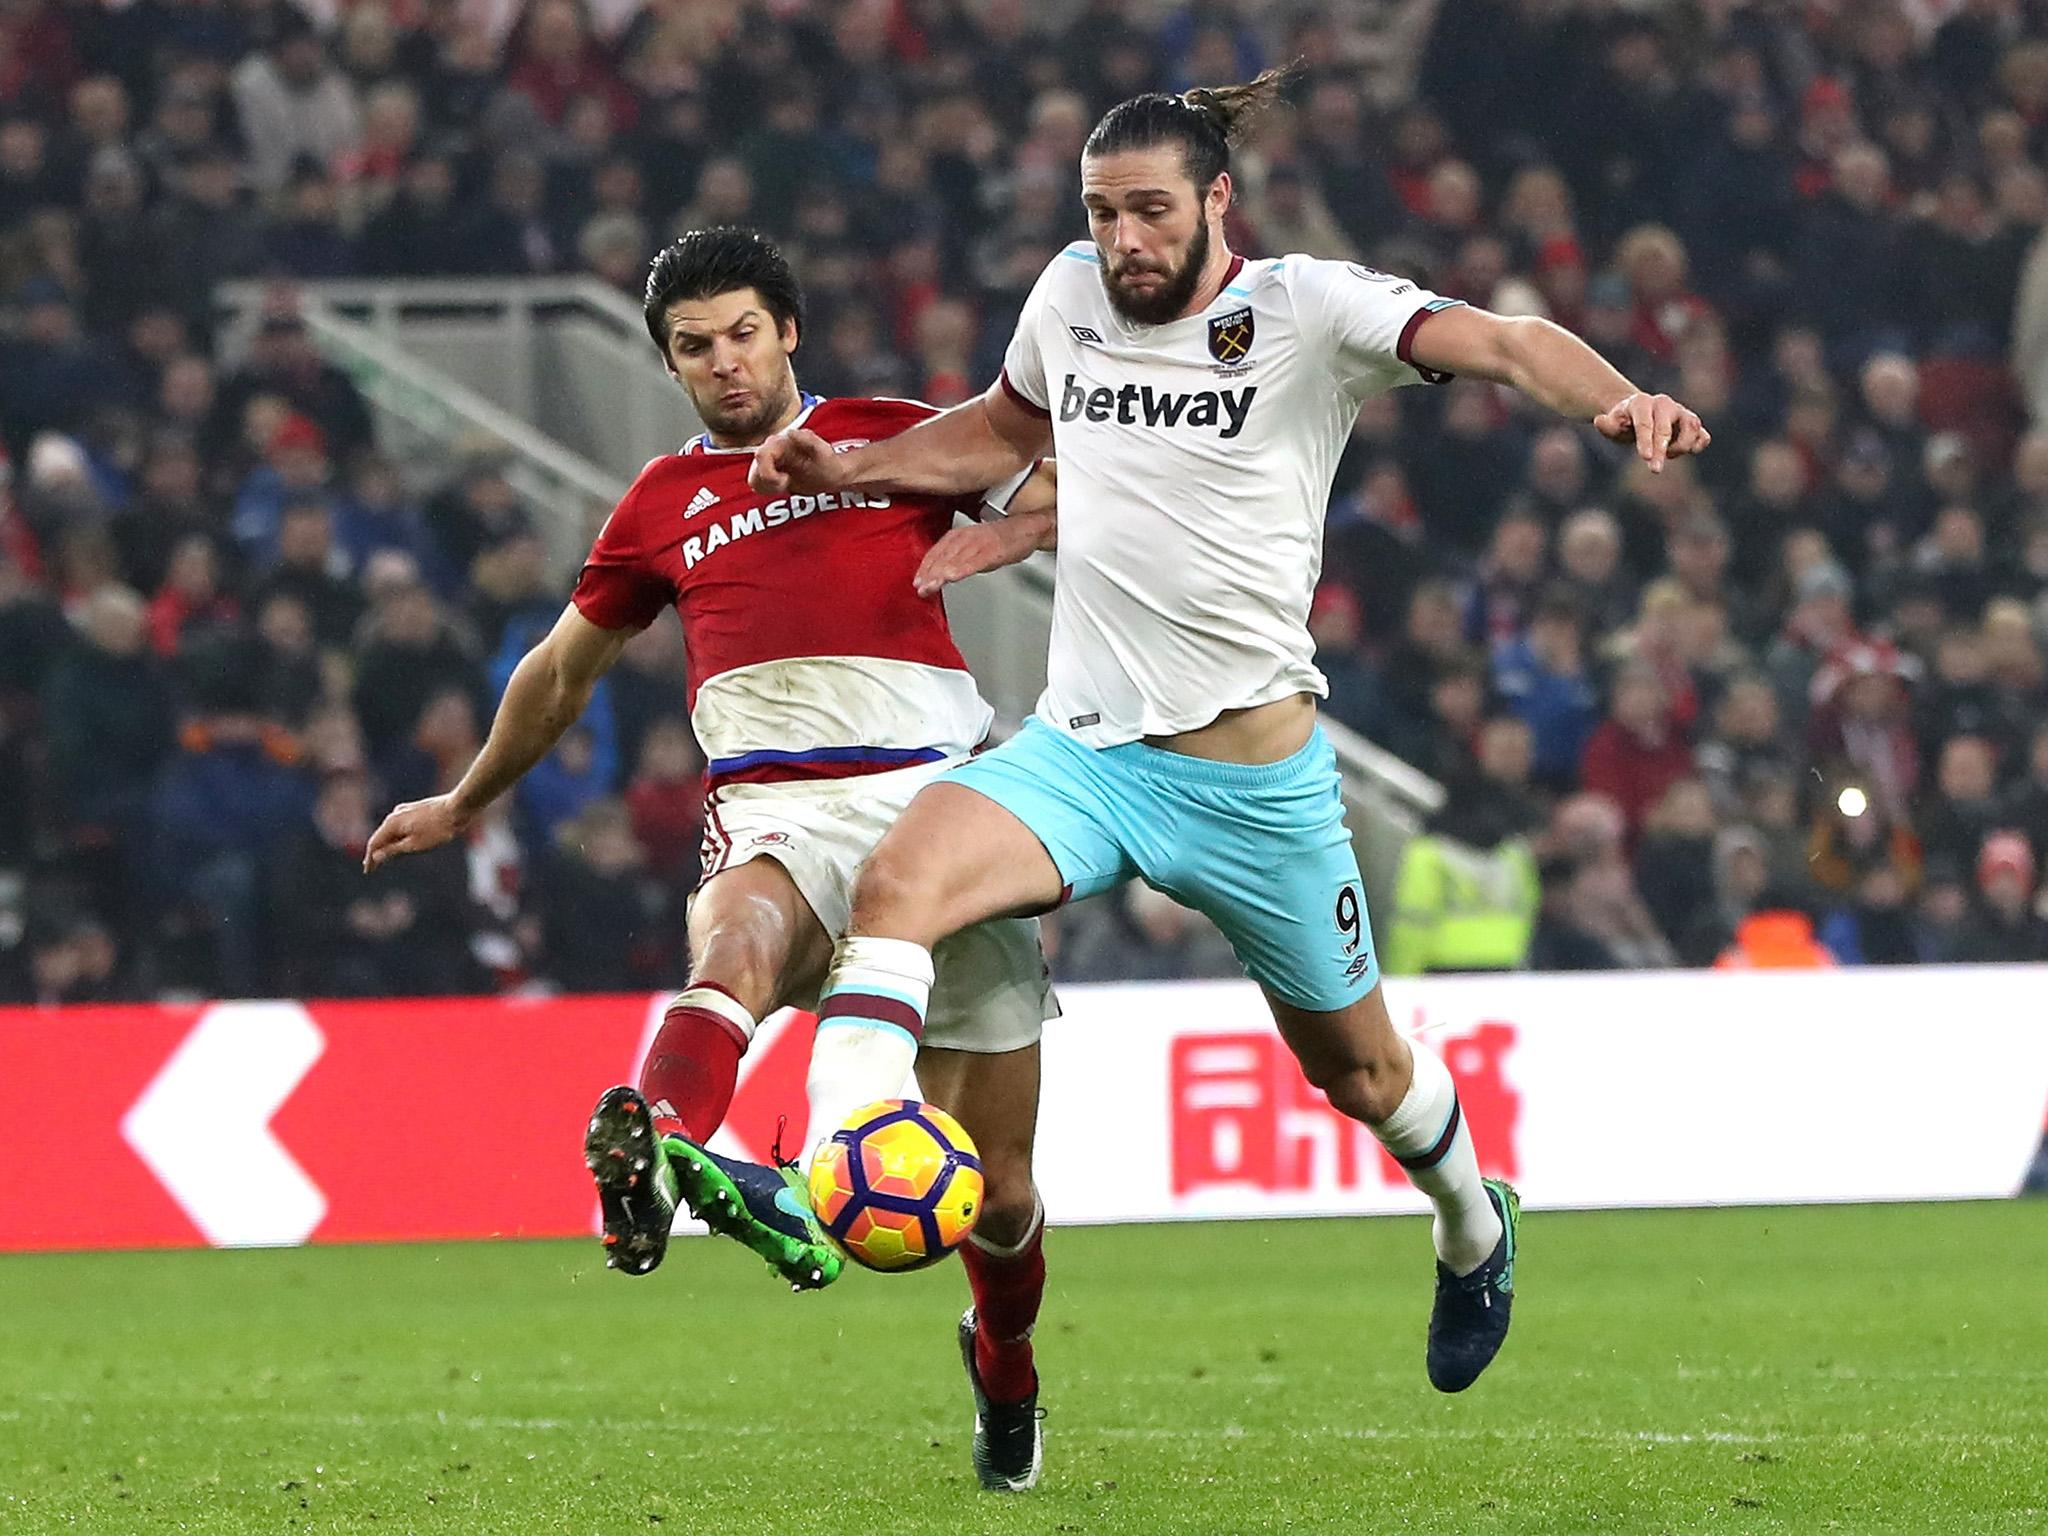 Andy Carroll targeting England return after good spell of